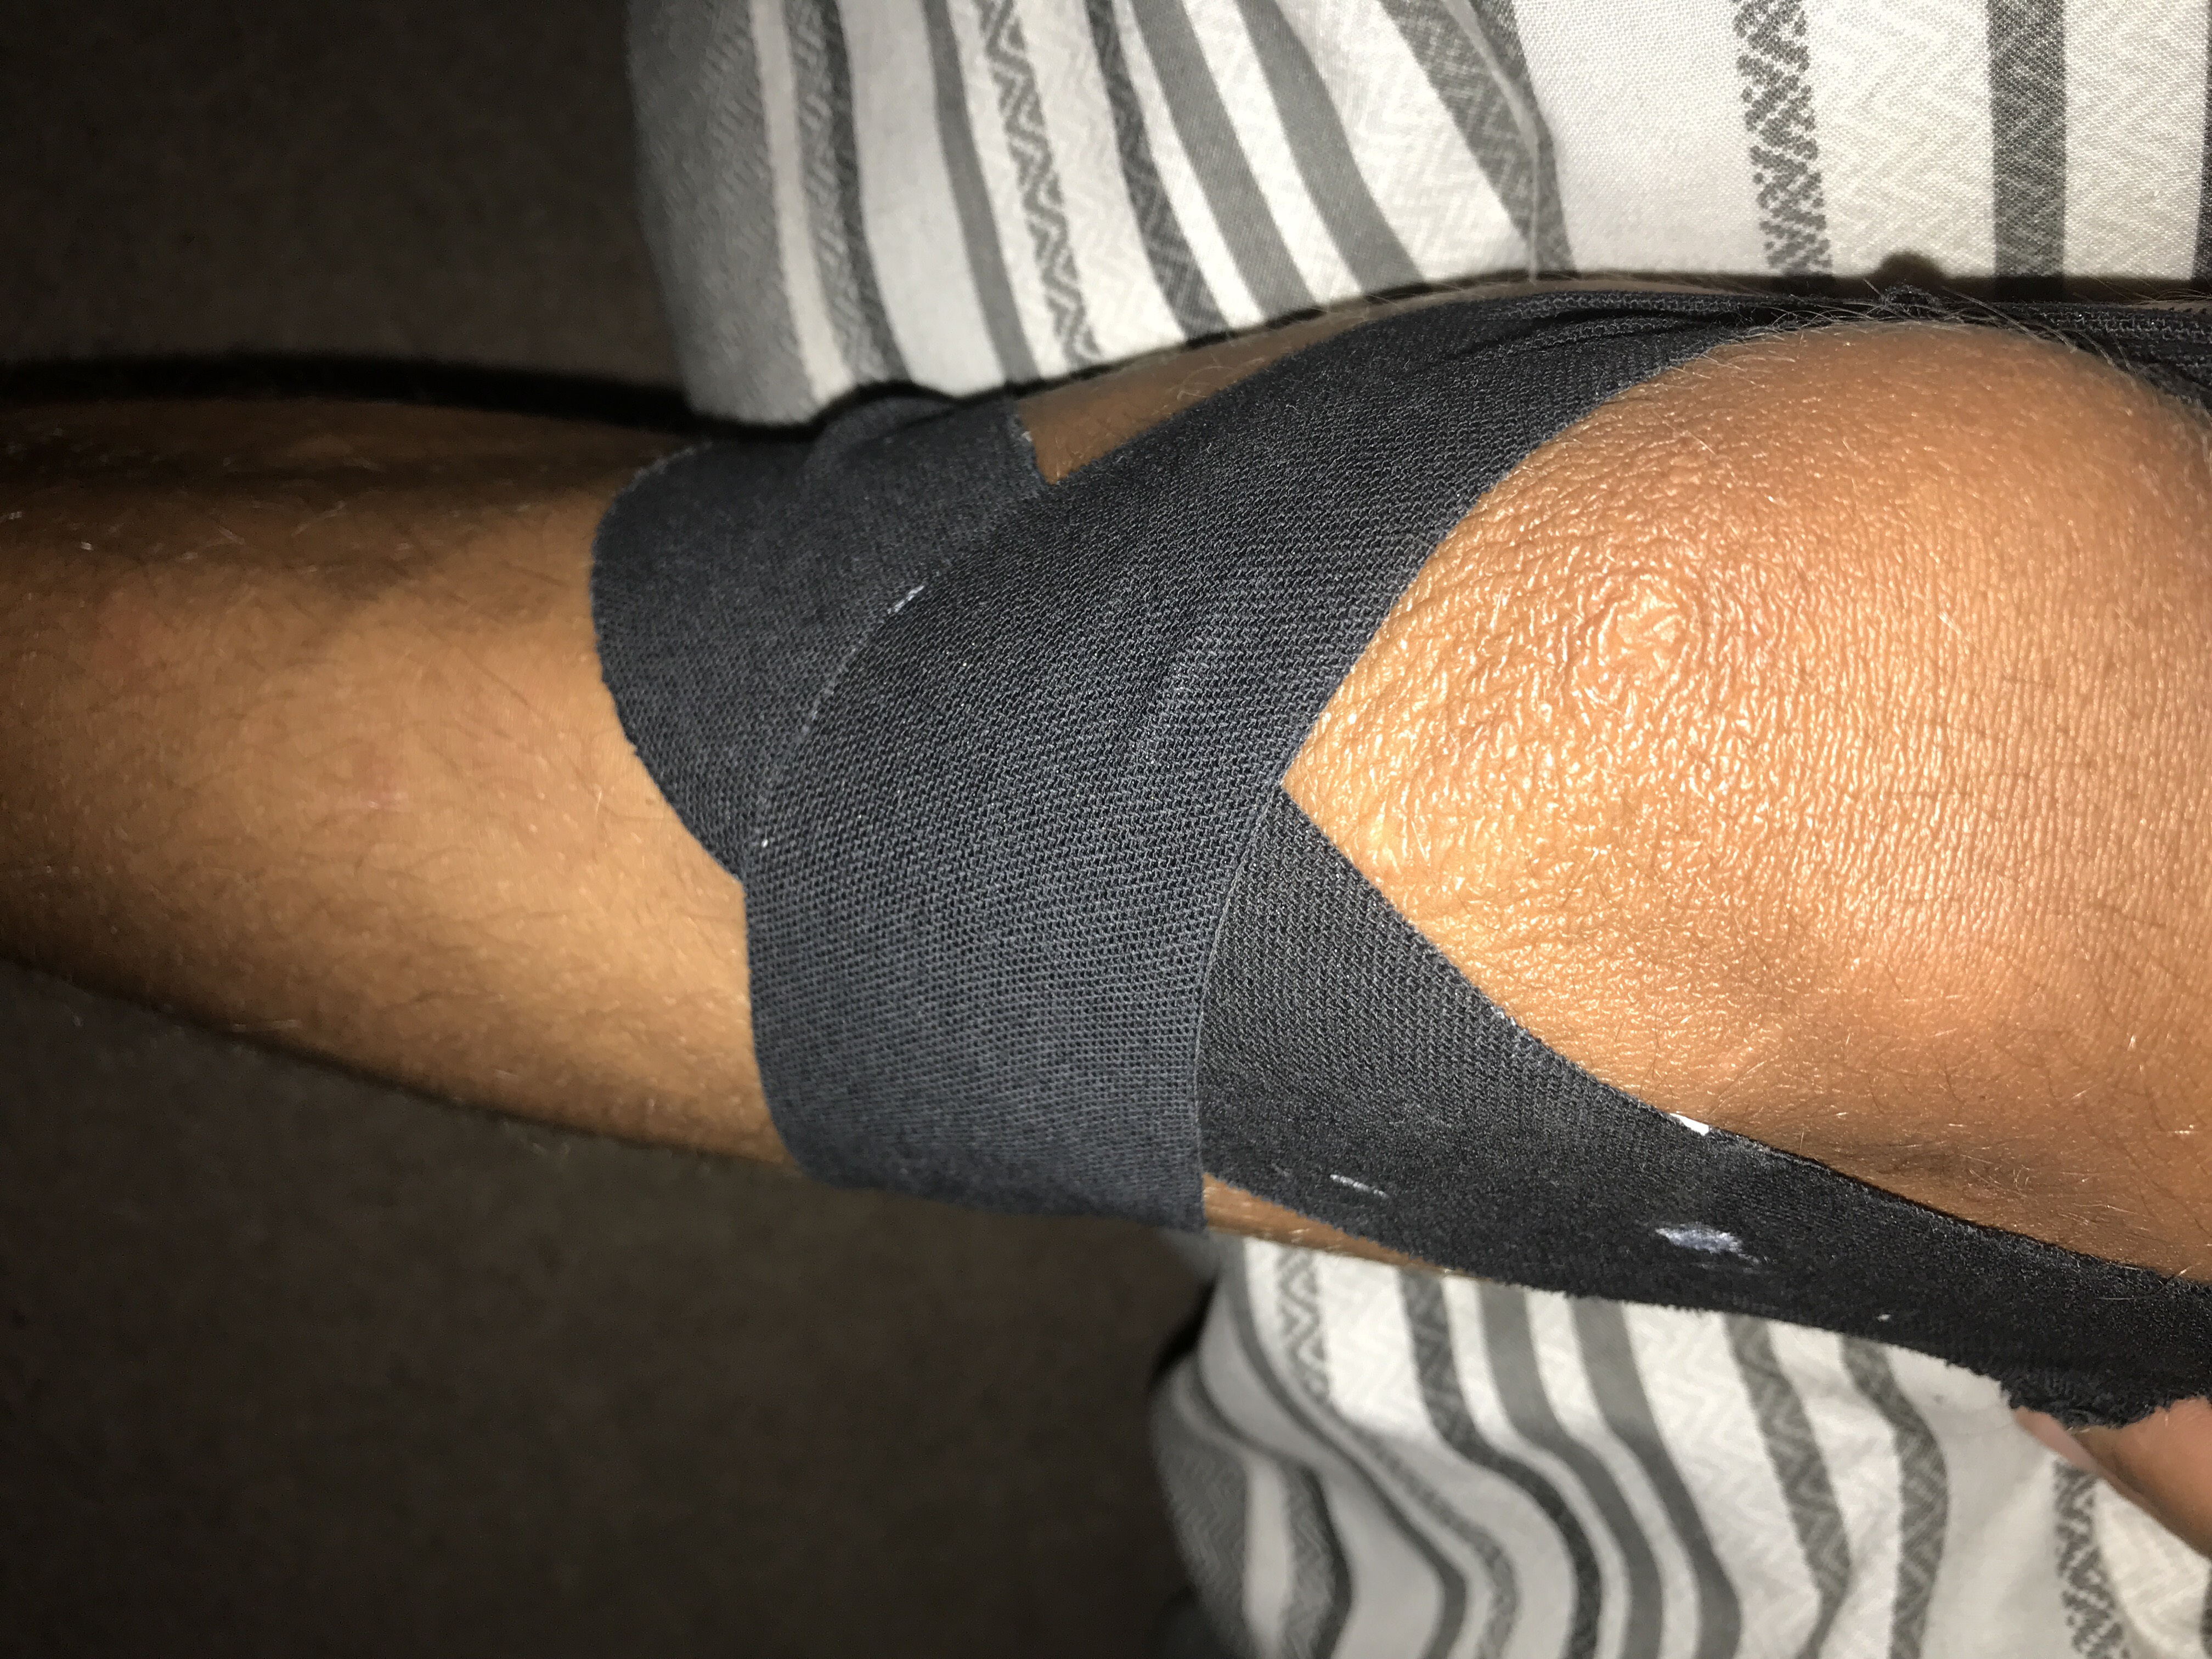 Rowing Knee strapping with D3 tape